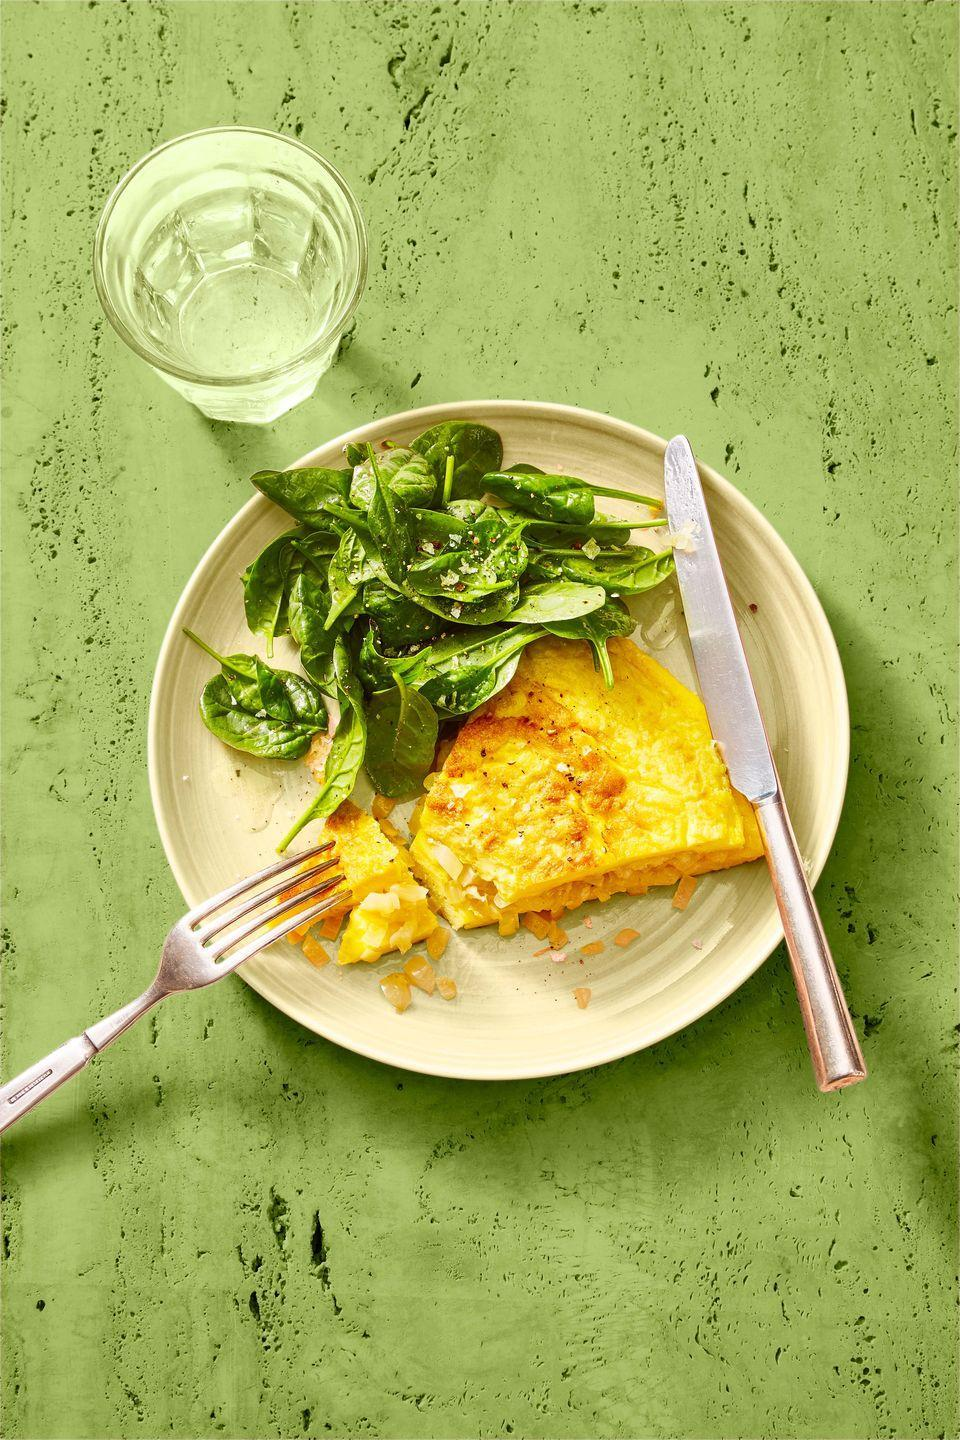 """<p>A side of greens dressed with lemon juice and Parmesan makes brunch extra healthy ... so you can save room for <a href=""""https://www.goodhousekeeping.com/holidays/fathers-day/g4399/fathers-day-cakes/"""" rel=""""nofollow noopener"""" target=""""_blank"""" data-ylk=""""slk:Father's Day cake"""" class=""""link rapid-noclick-resp"""">Father's Day cake</a> later.</p><p><em><a href=""""https://www.goodhousekeeping.com/food-recipes/a35036897/classic-omelet-and-greens-recipe/"""" rel=""""nofollow noopener"""" target=""""_blank"""" data-ylk=""""slk:Get the recipe for Classic Omelet and Greens »"""" class=""""link rapid-noclick-resp"""">Get the recipe for Classic Omelet and Greens »</a></em></p>"""